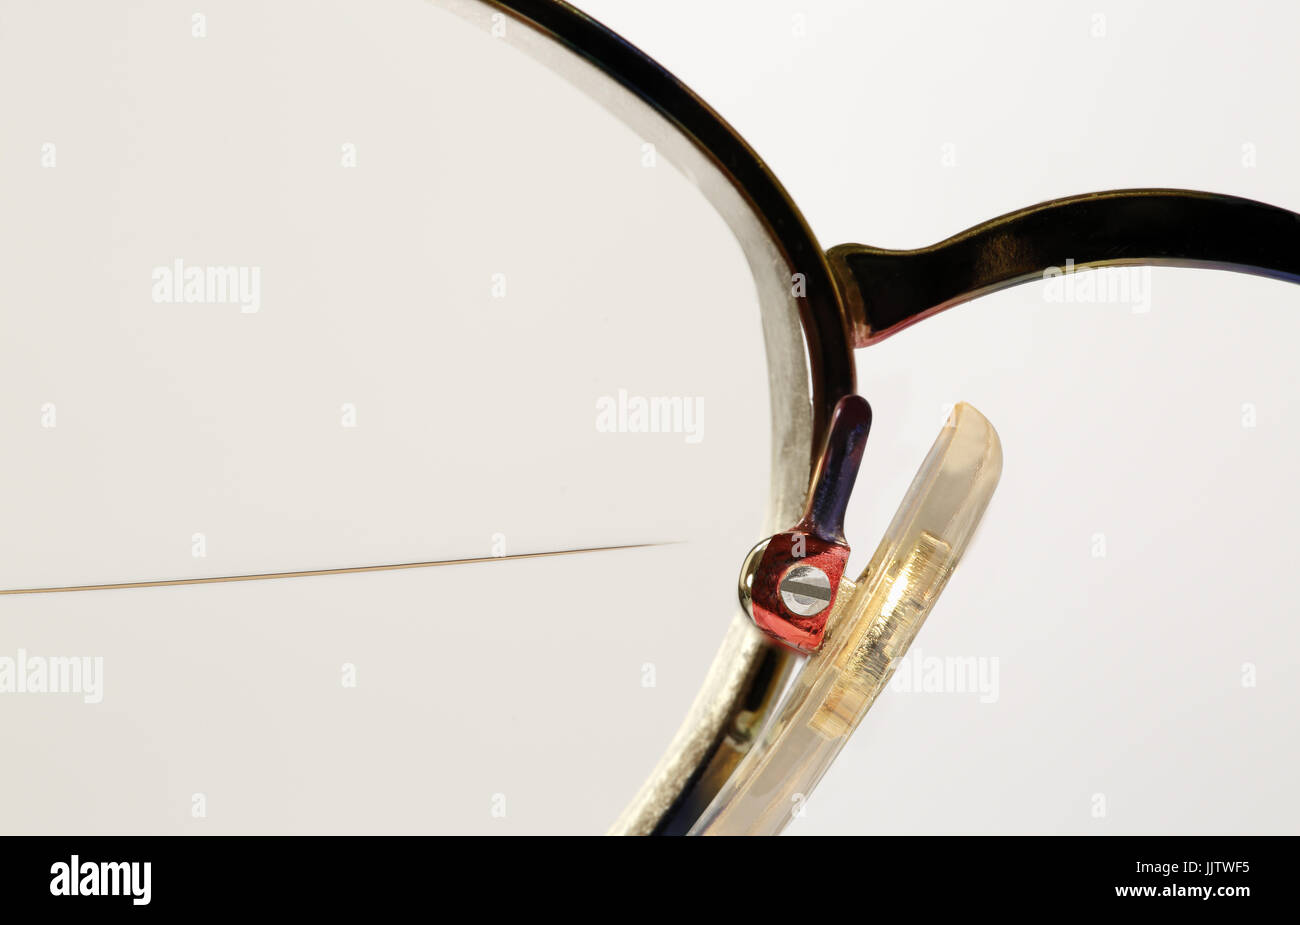 'Guess what it is' close up image, or background image, of a pair of spectacles - Stock Image